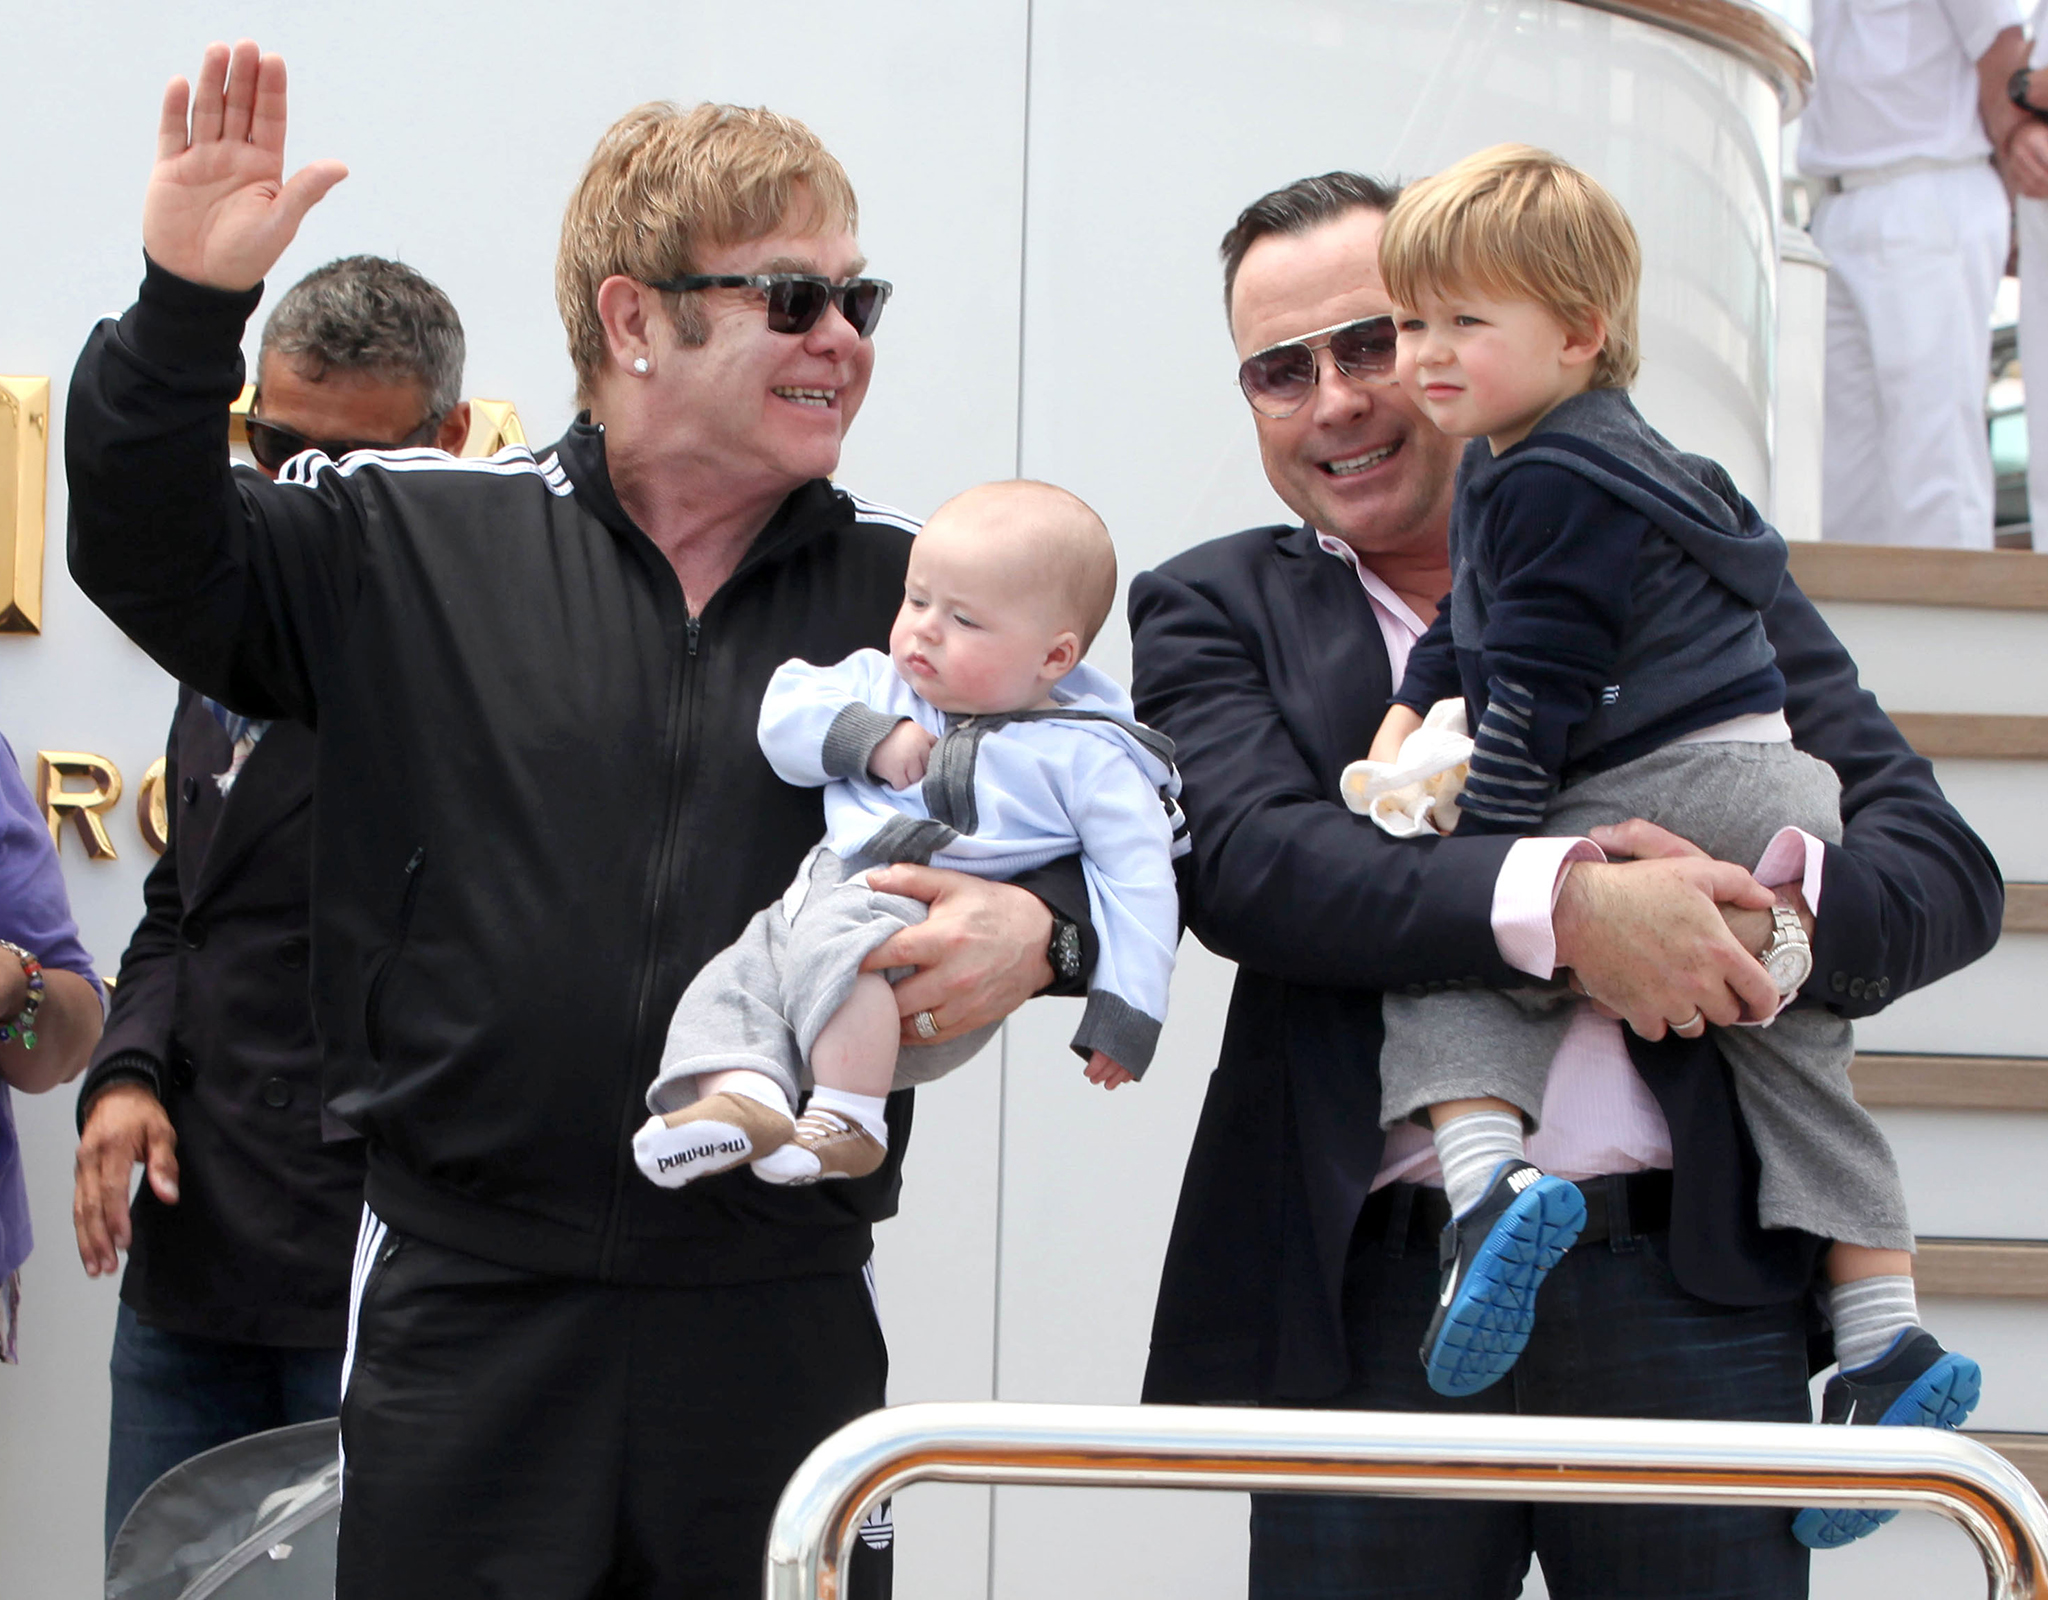 Elton John, David Furnish and their sons (FameFlynet)